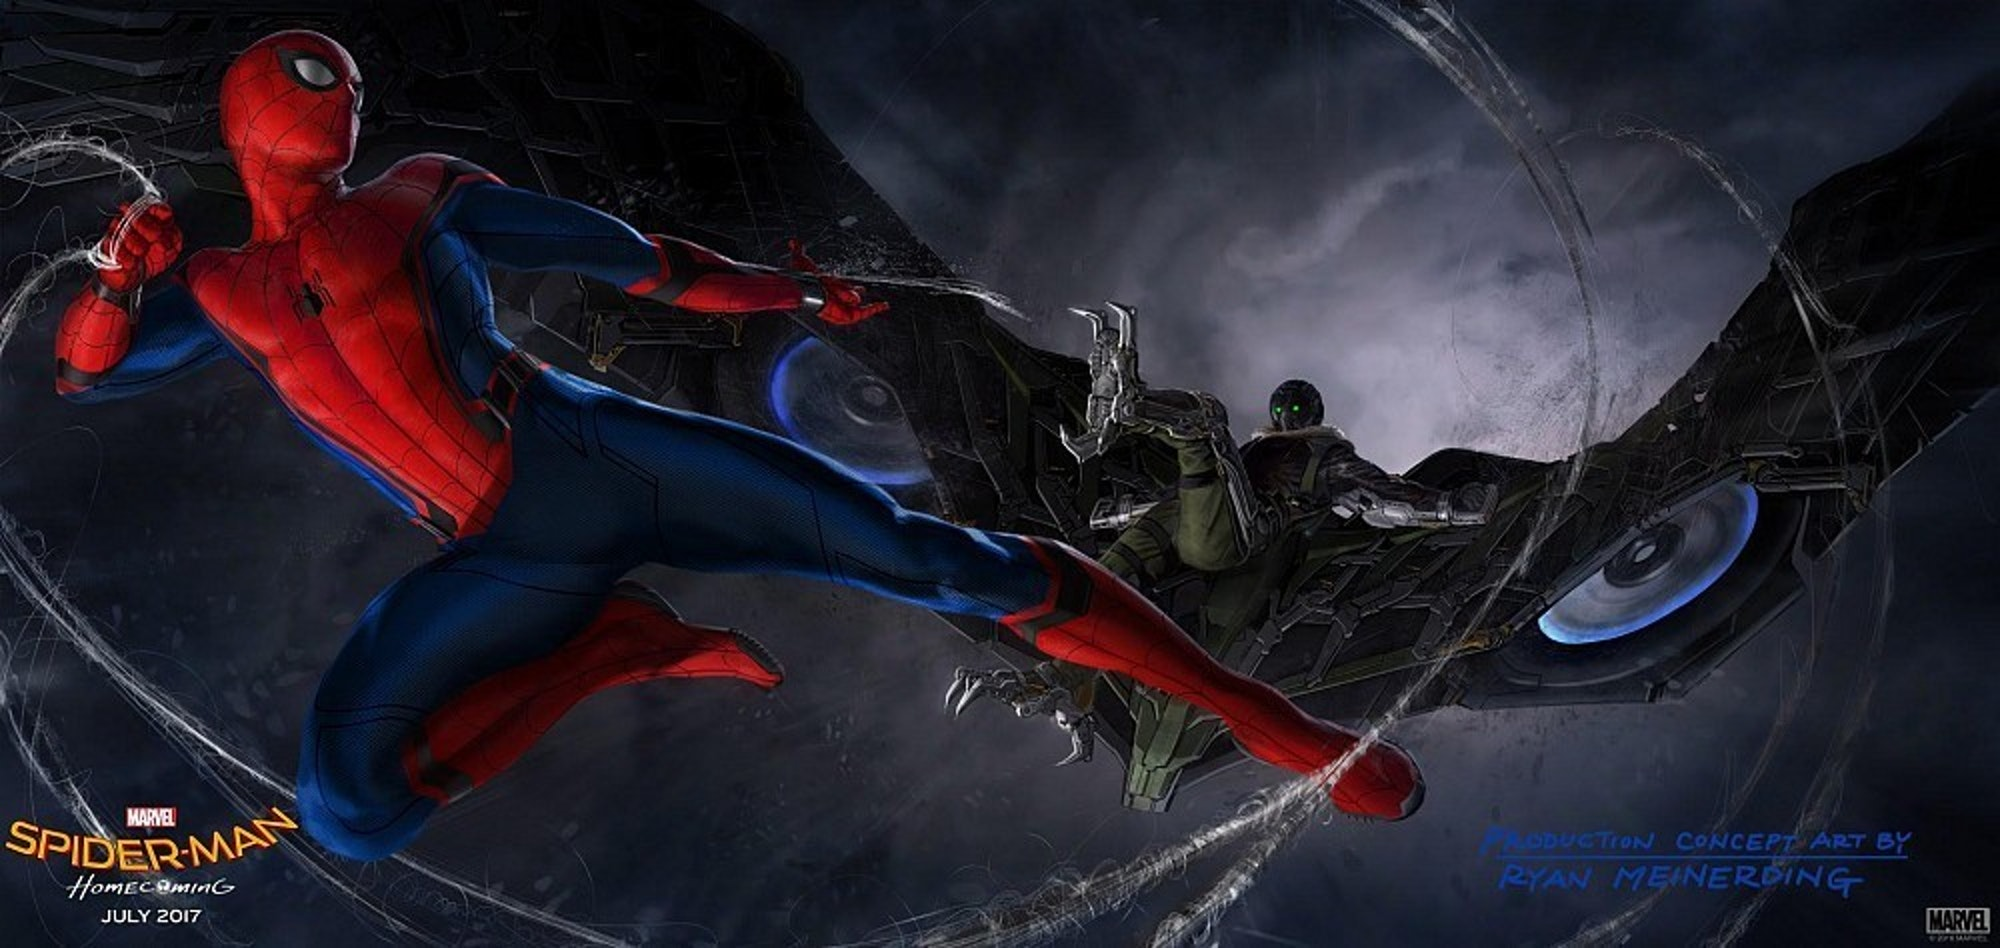 Official concept art released by Marvel for 'Spider-Man: Homecoming'.